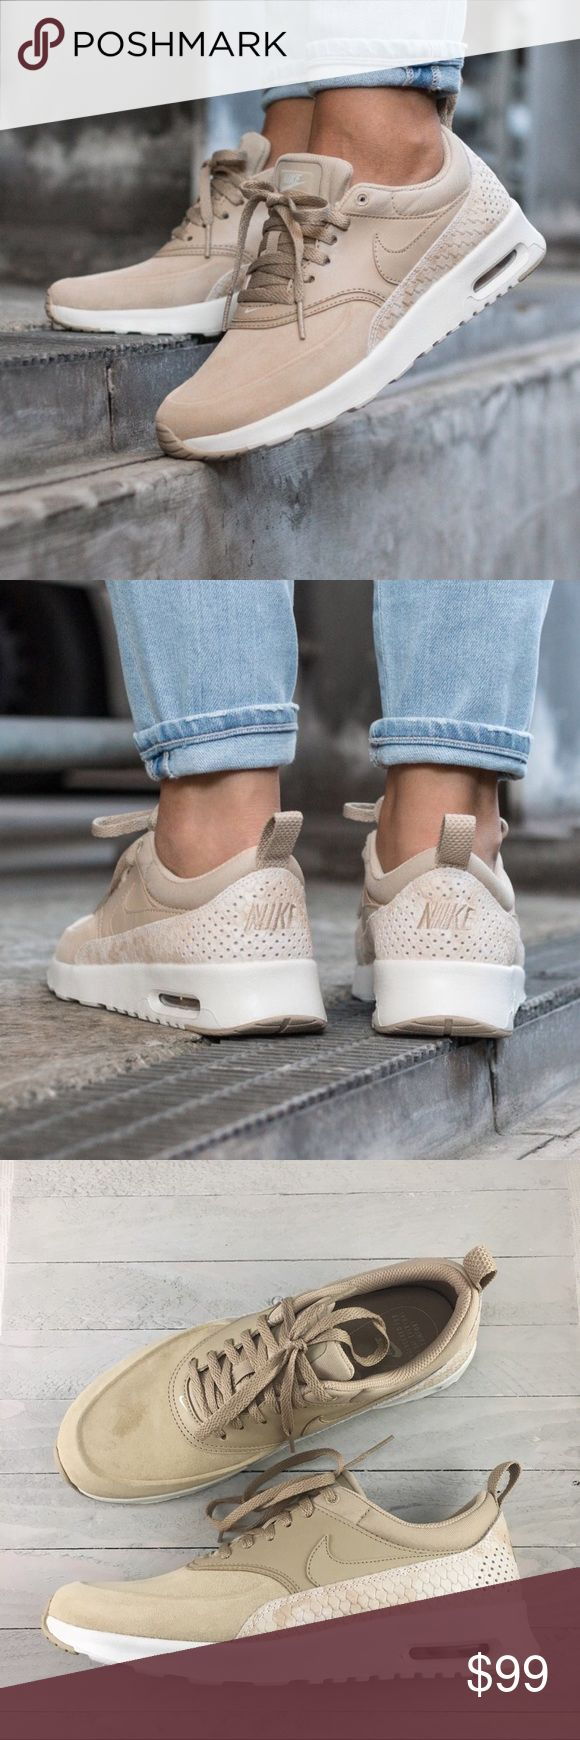 Women's Nike Air Max Thea Premium Linen Sneaker Women's Nike Air Max Thea Premium Trainers Linen Sneaker lends understated style and ultralight cushioning for everyday wear. Style/Color: 616723-203  • Women's size 9.5  • NEW in box (no lid) • No trades •1